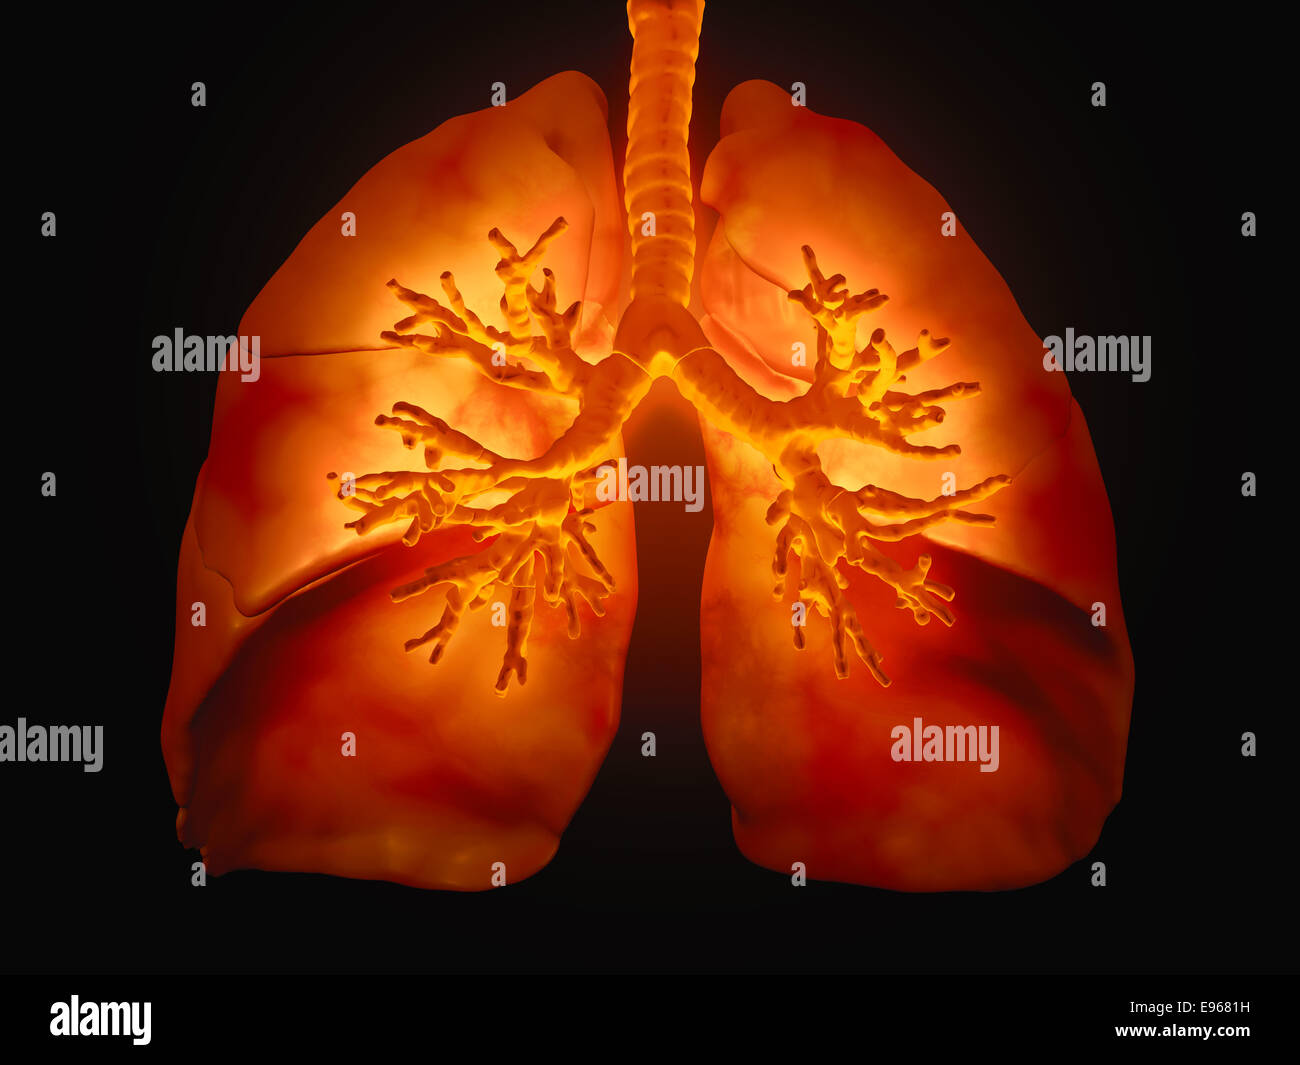 3D medical illustration - lungs with visible bronchi - Stock Image